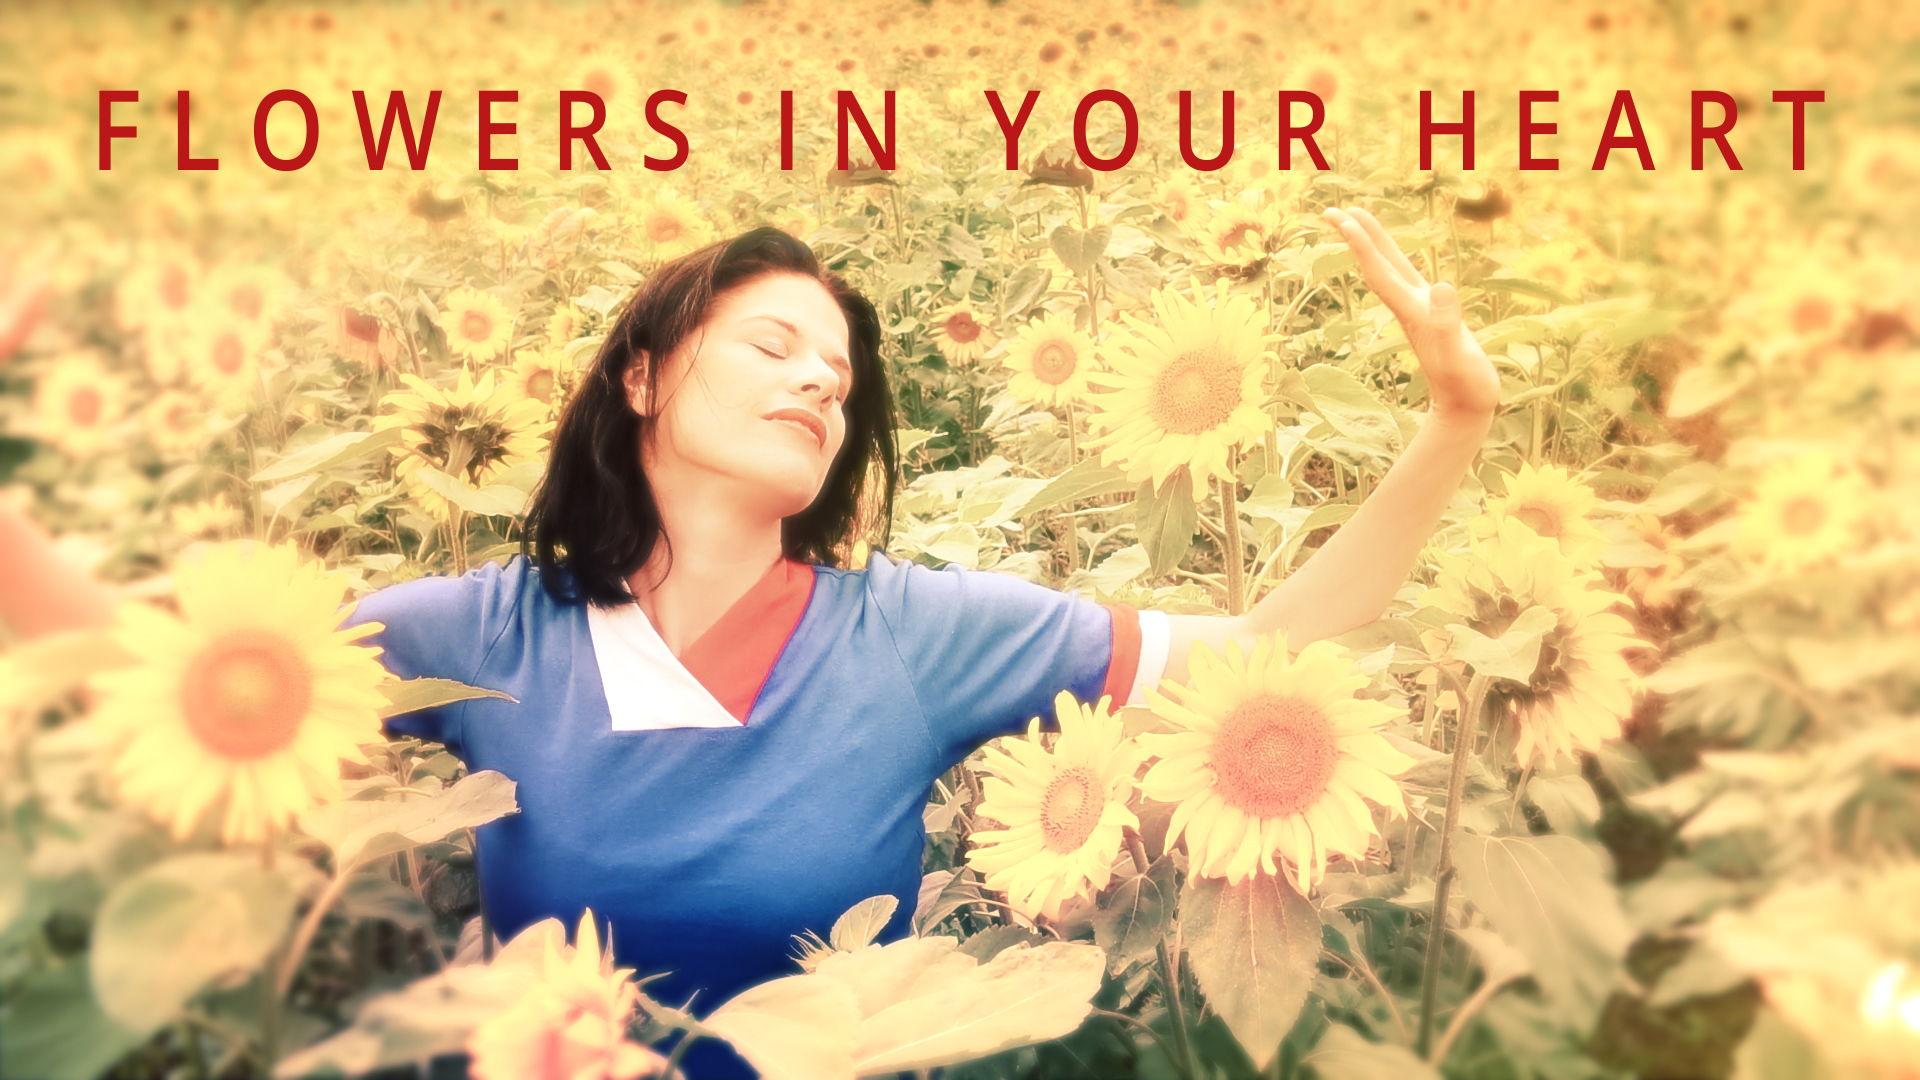 Flowers in Your Heart